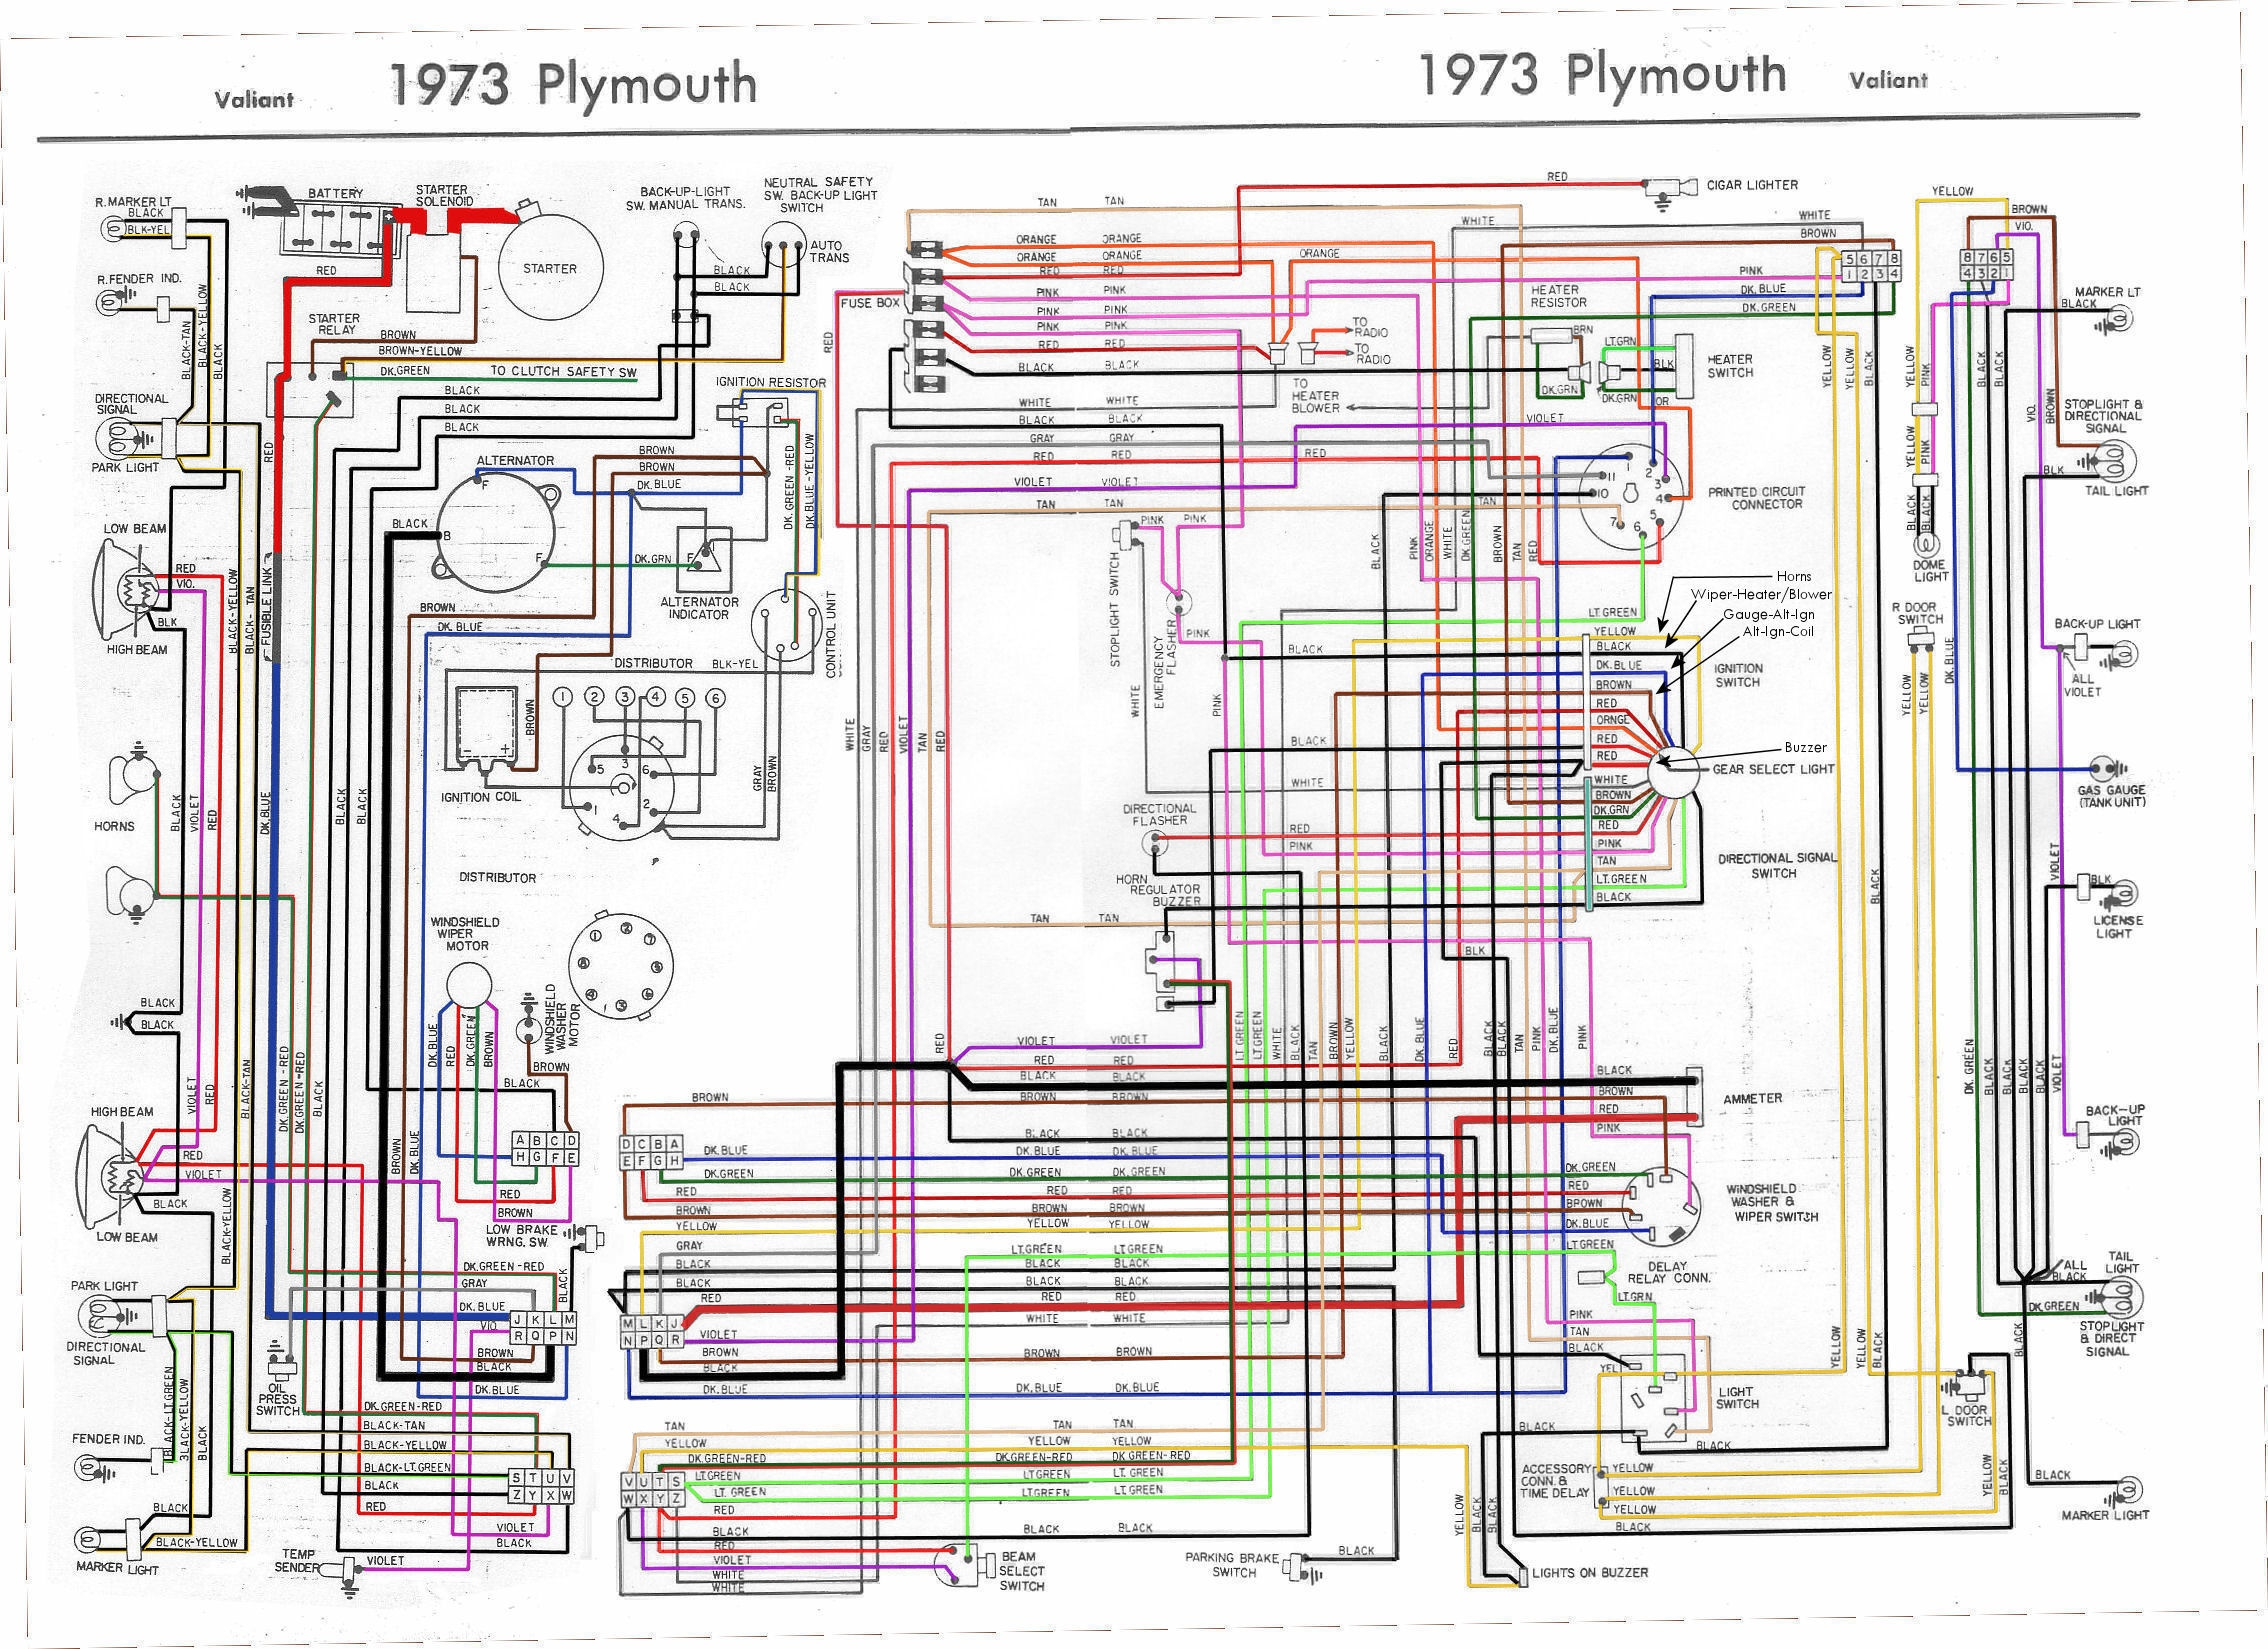 Plymouth Valiant Wiring Diagram Will Be A Thing 1966 Porsche Ignition Car Elsavadorla Diagrams Dash